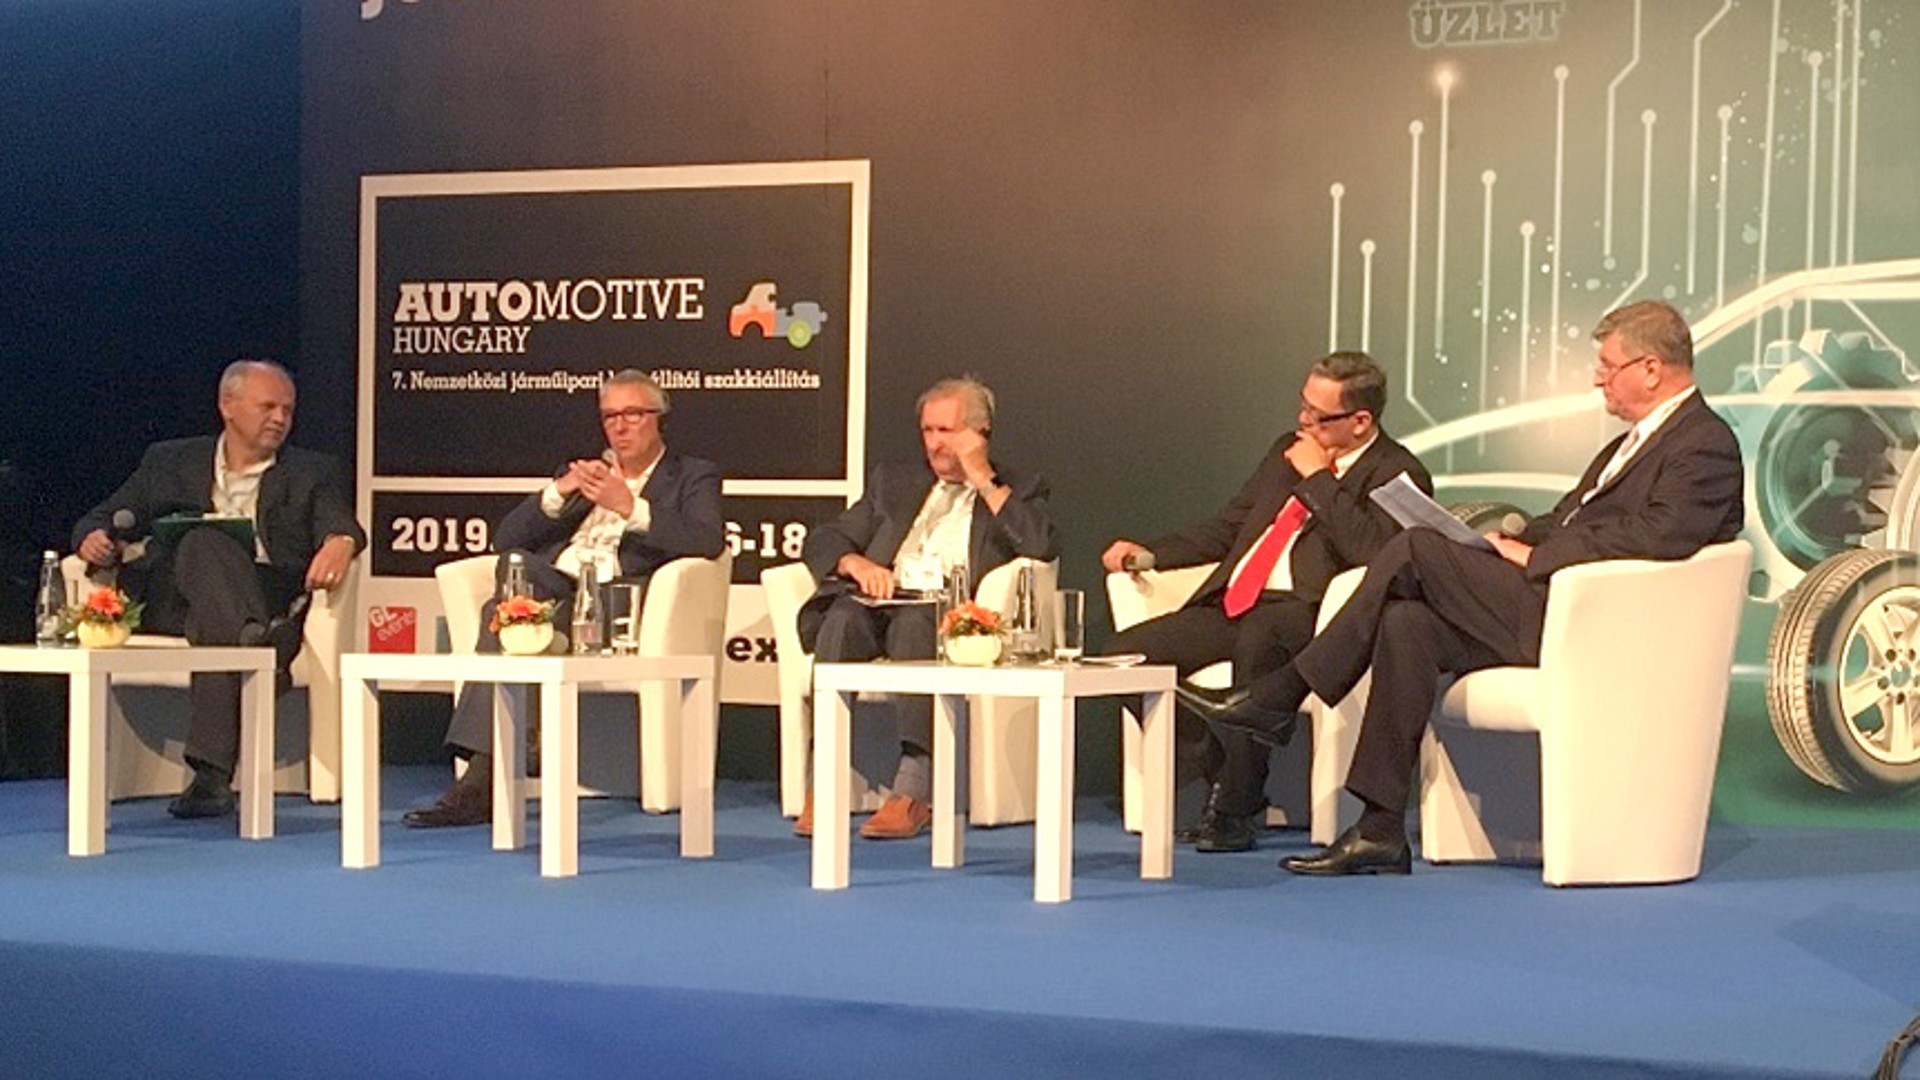 Uwe Mang, SEG Automotive, as a guest speaker in a panel discussion at Automotive Hungary Expo